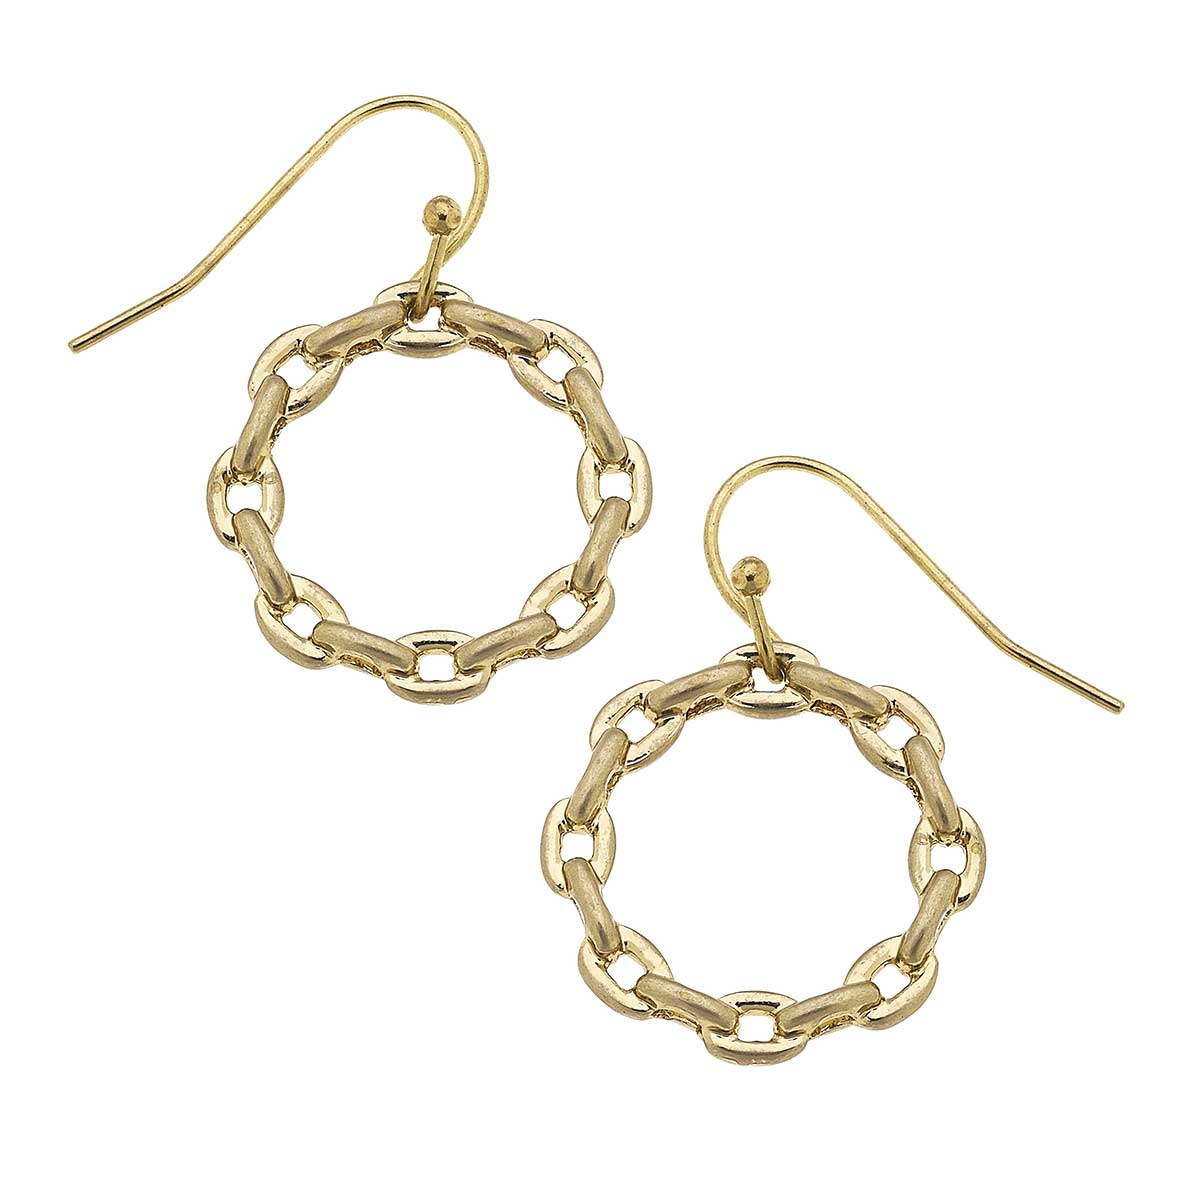 Heidi Frozen Chain Link Hoop Earrings in Worn Gold